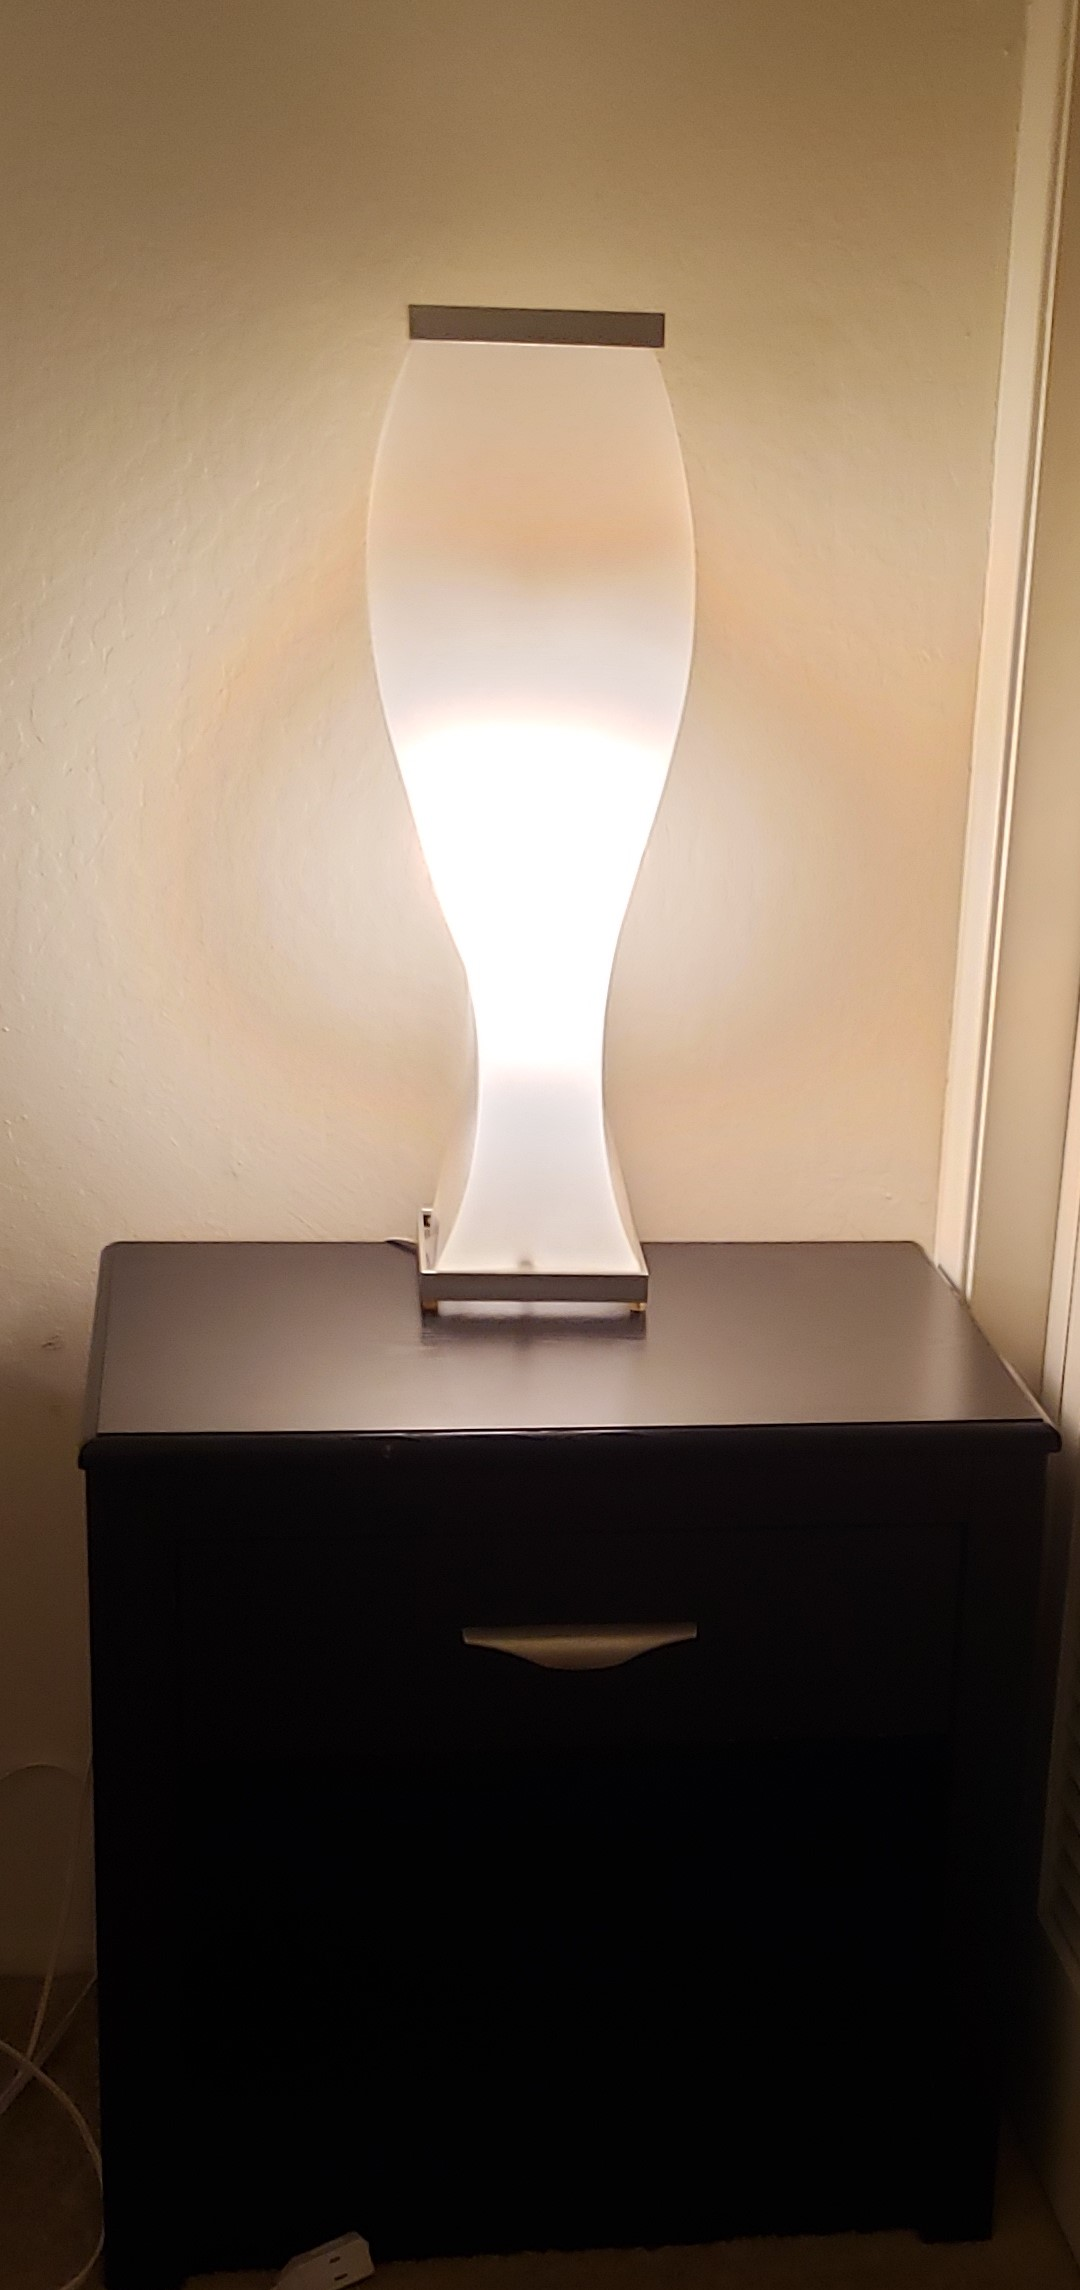 1 of 2 Black with silver accent night stands